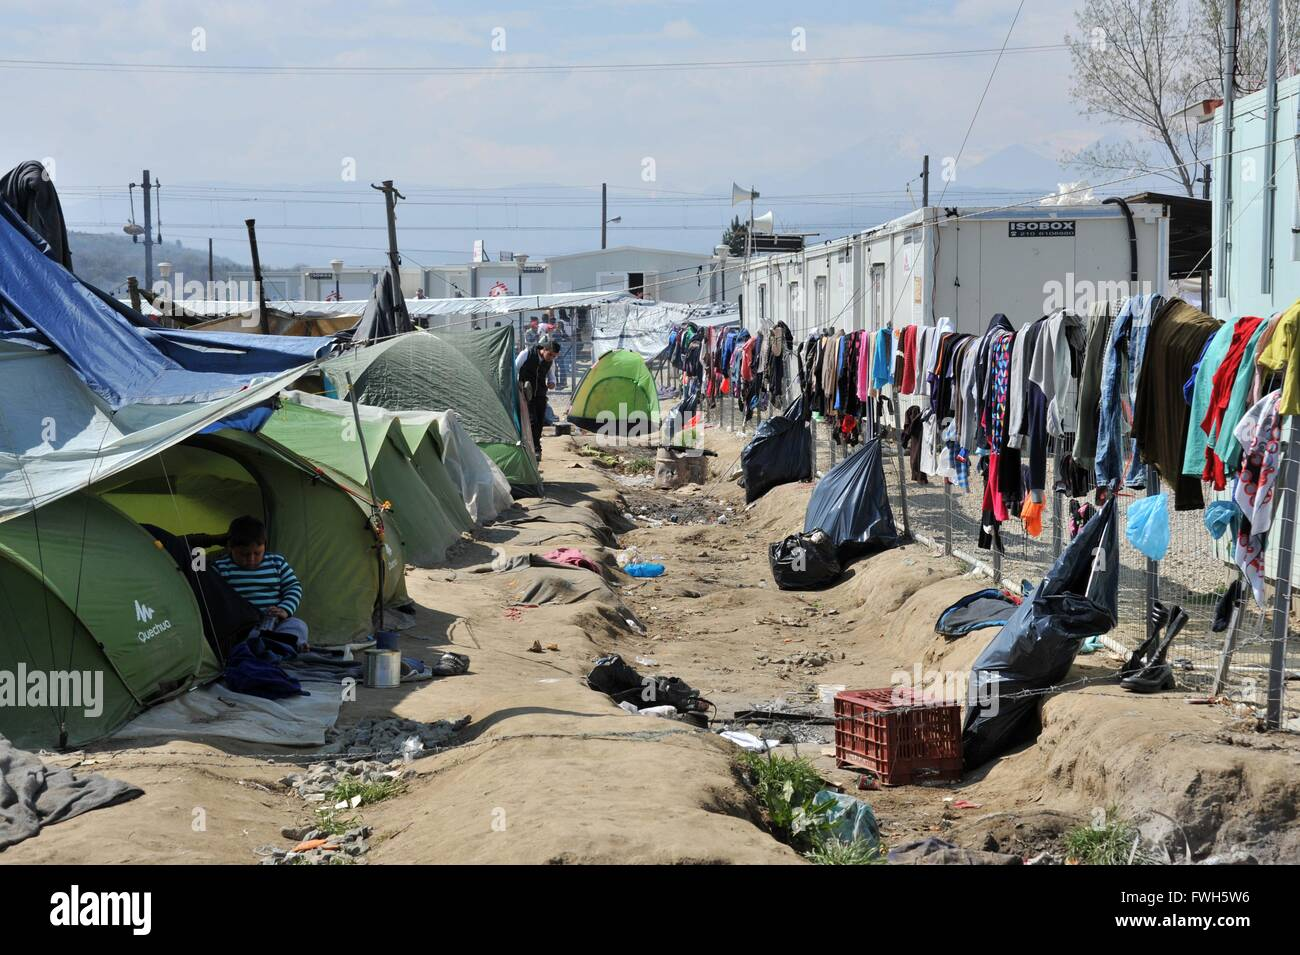 Living in tents and in the trash - 29 March 2016 - Stock Image